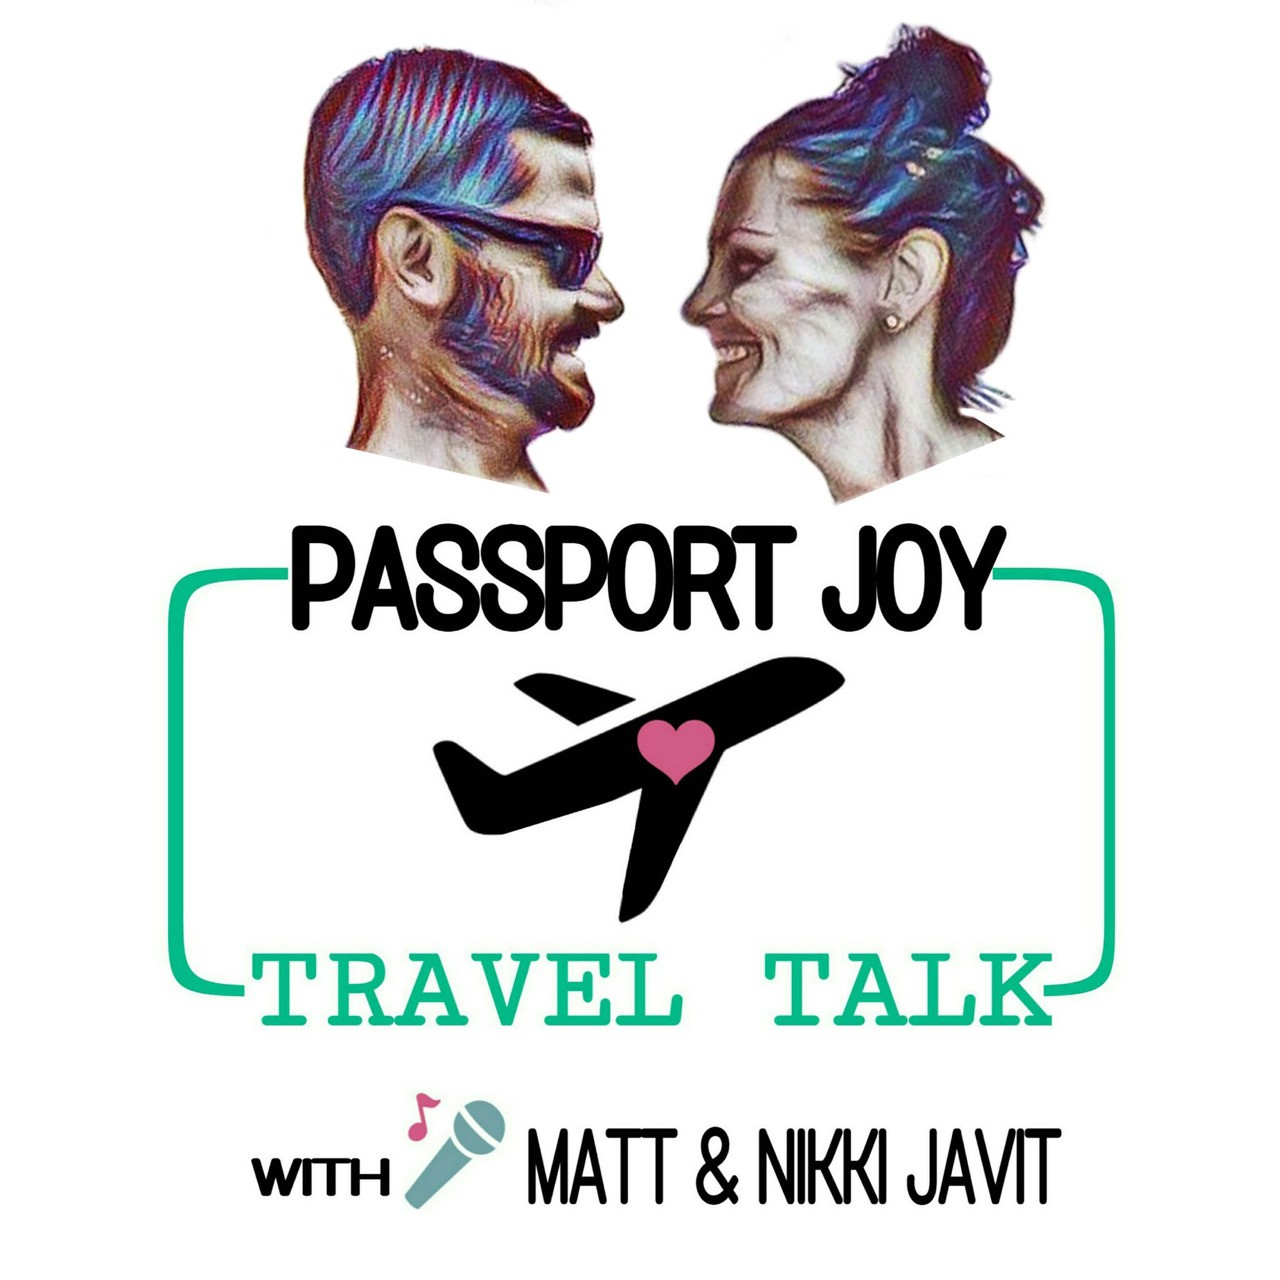 Check out our NEW TRAVEL PODCAST! Travel tips, travel hacks, epic stories, advice, Q & A... and much more! Subscribe on iTunes, Stitcher, Spotify, Overcast or your favorite way to listen to podcasts—> #podcast